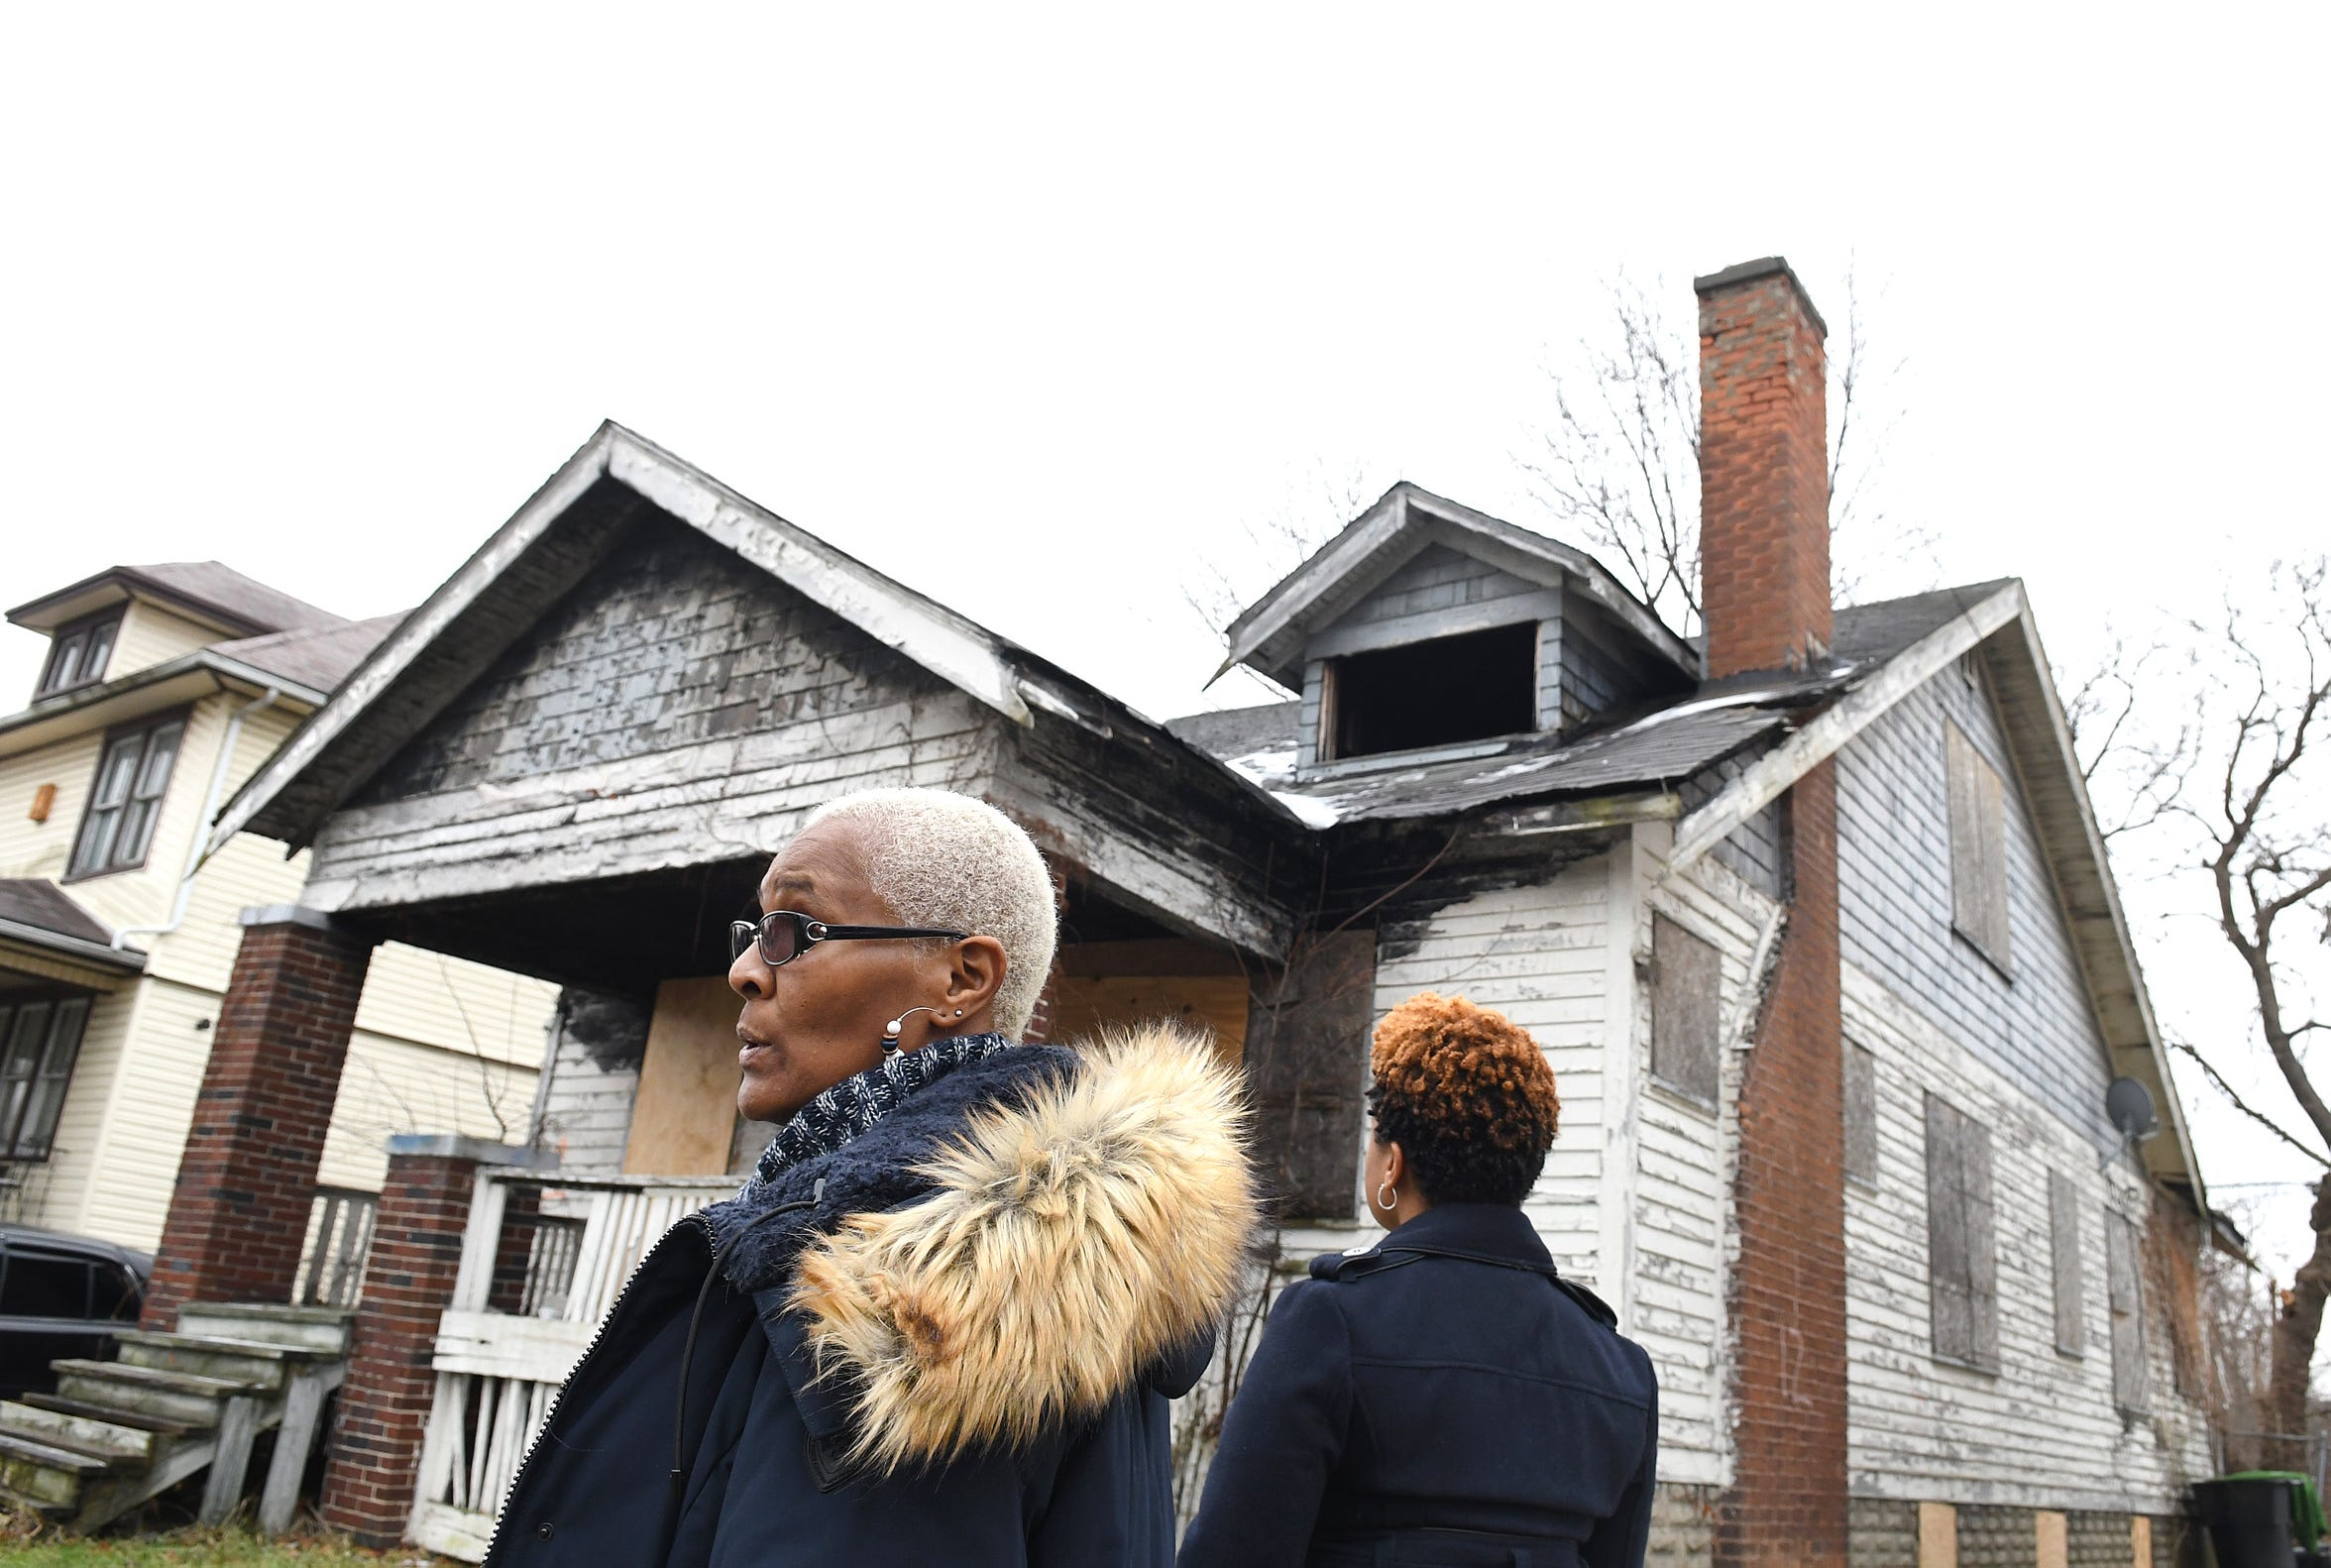 Jackie Smith of Detroit and her daughter, Kellie, look at a neighboring house on their block that has been vacant for years. Jackie has been trying to get the eyesore knocked down and cleared.